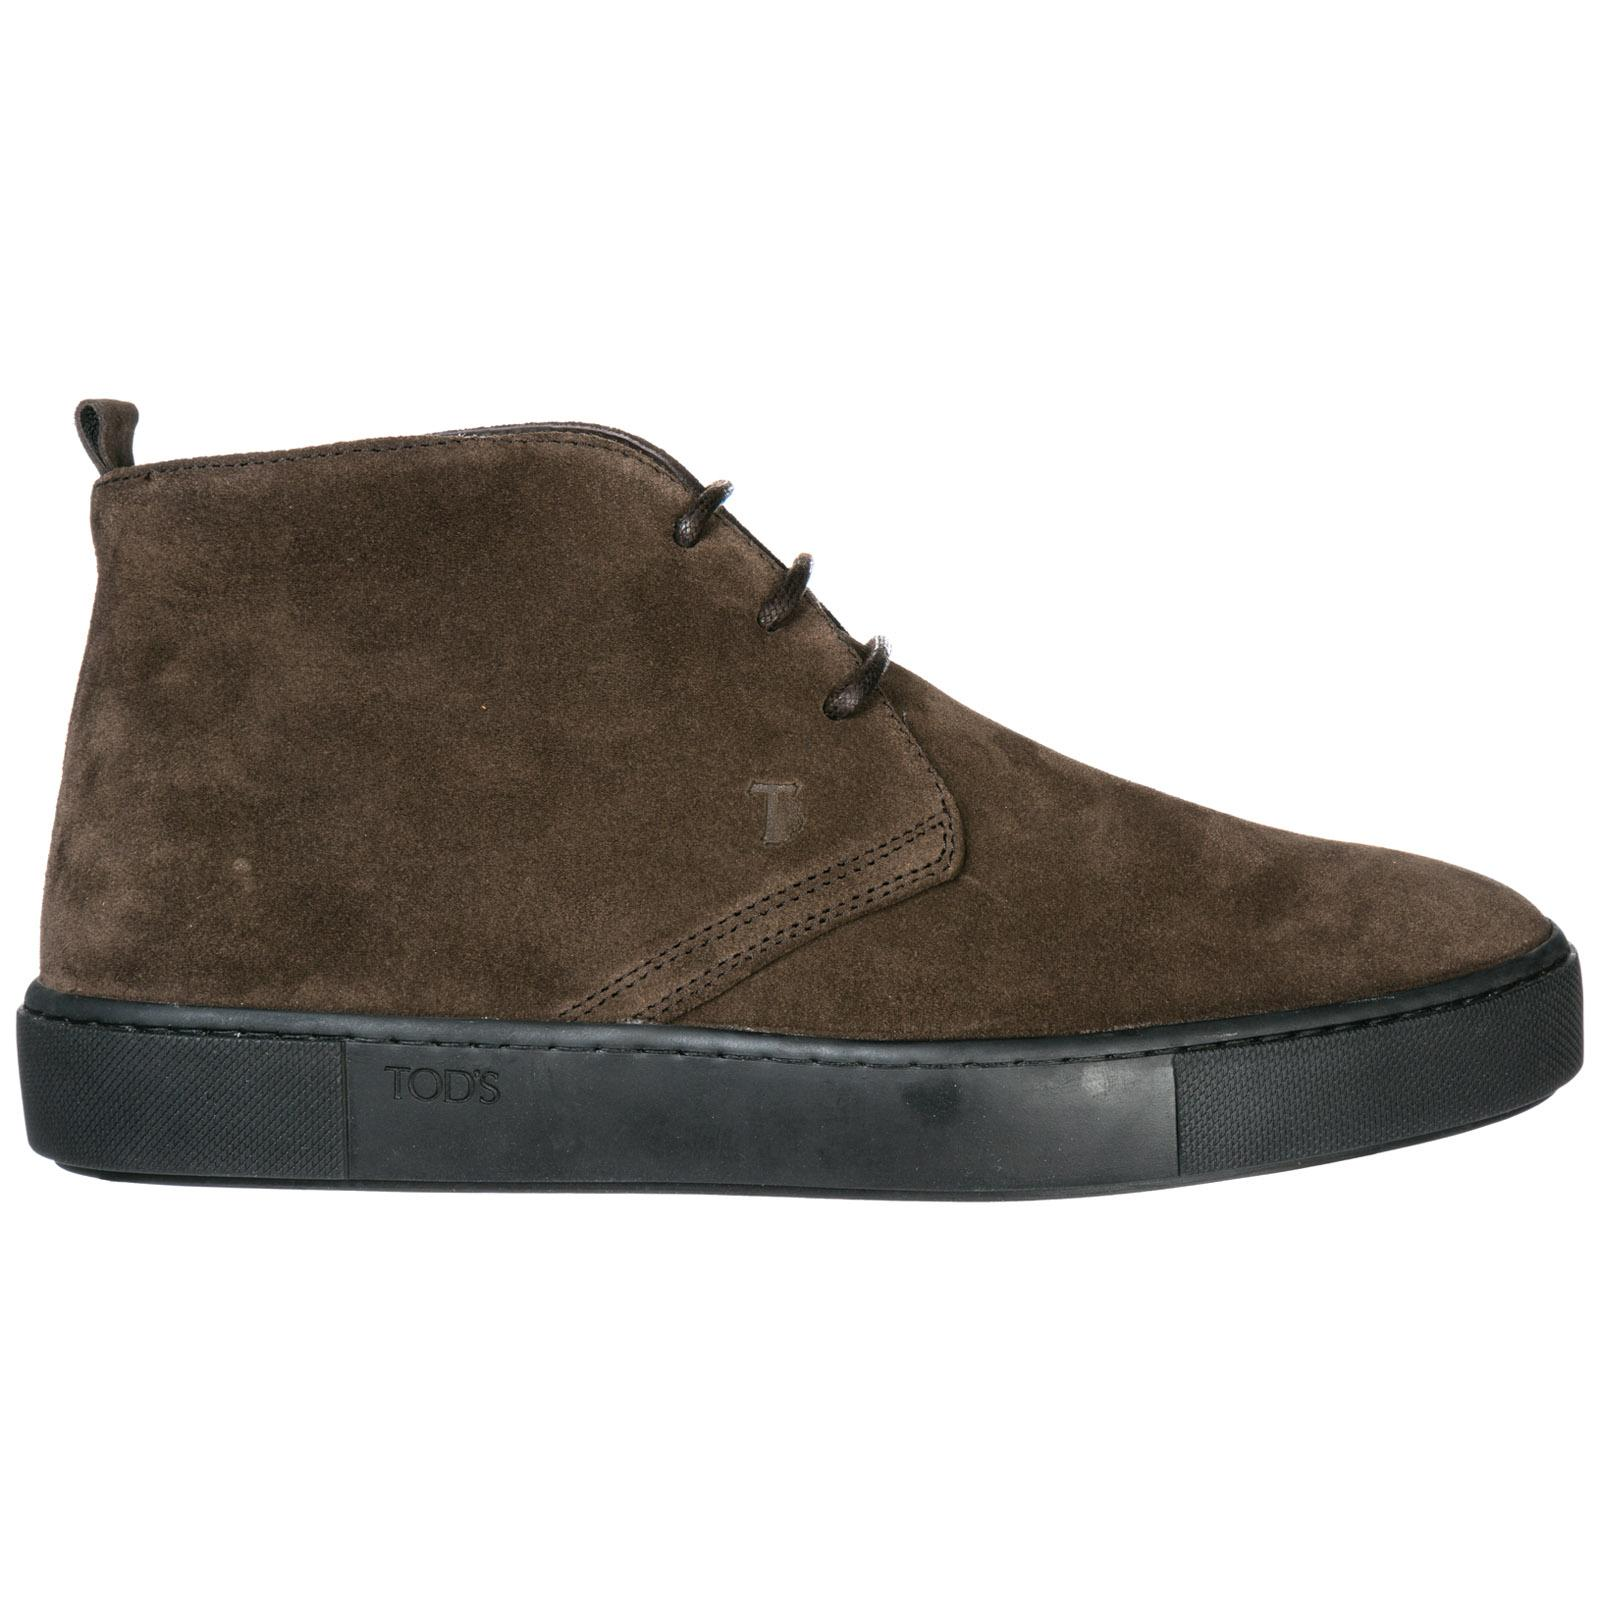 3ac909a33 Tod s Men s Suede Desert Boots Lace Up Ankle Boots In Brown